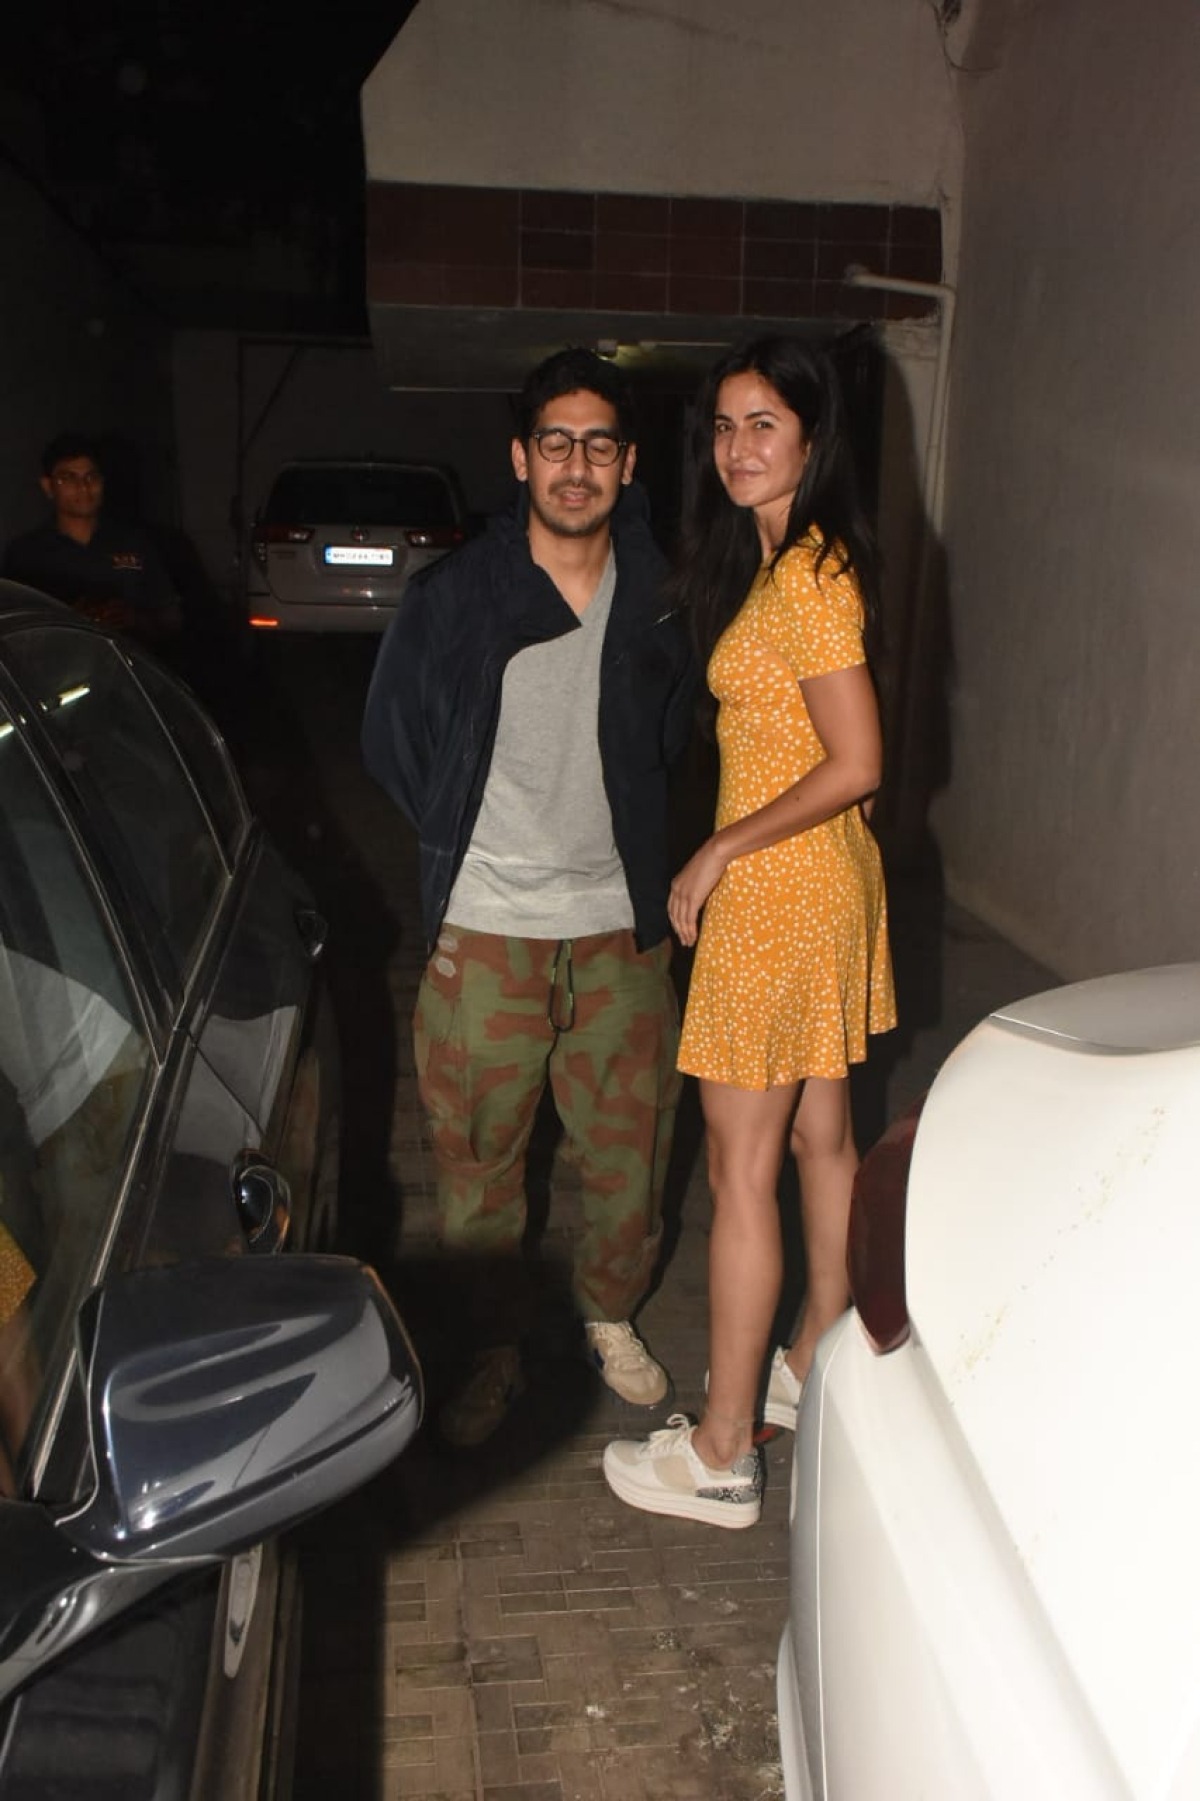 Katrina Kaif is a flawless beauty as she steps out with no makeup in public